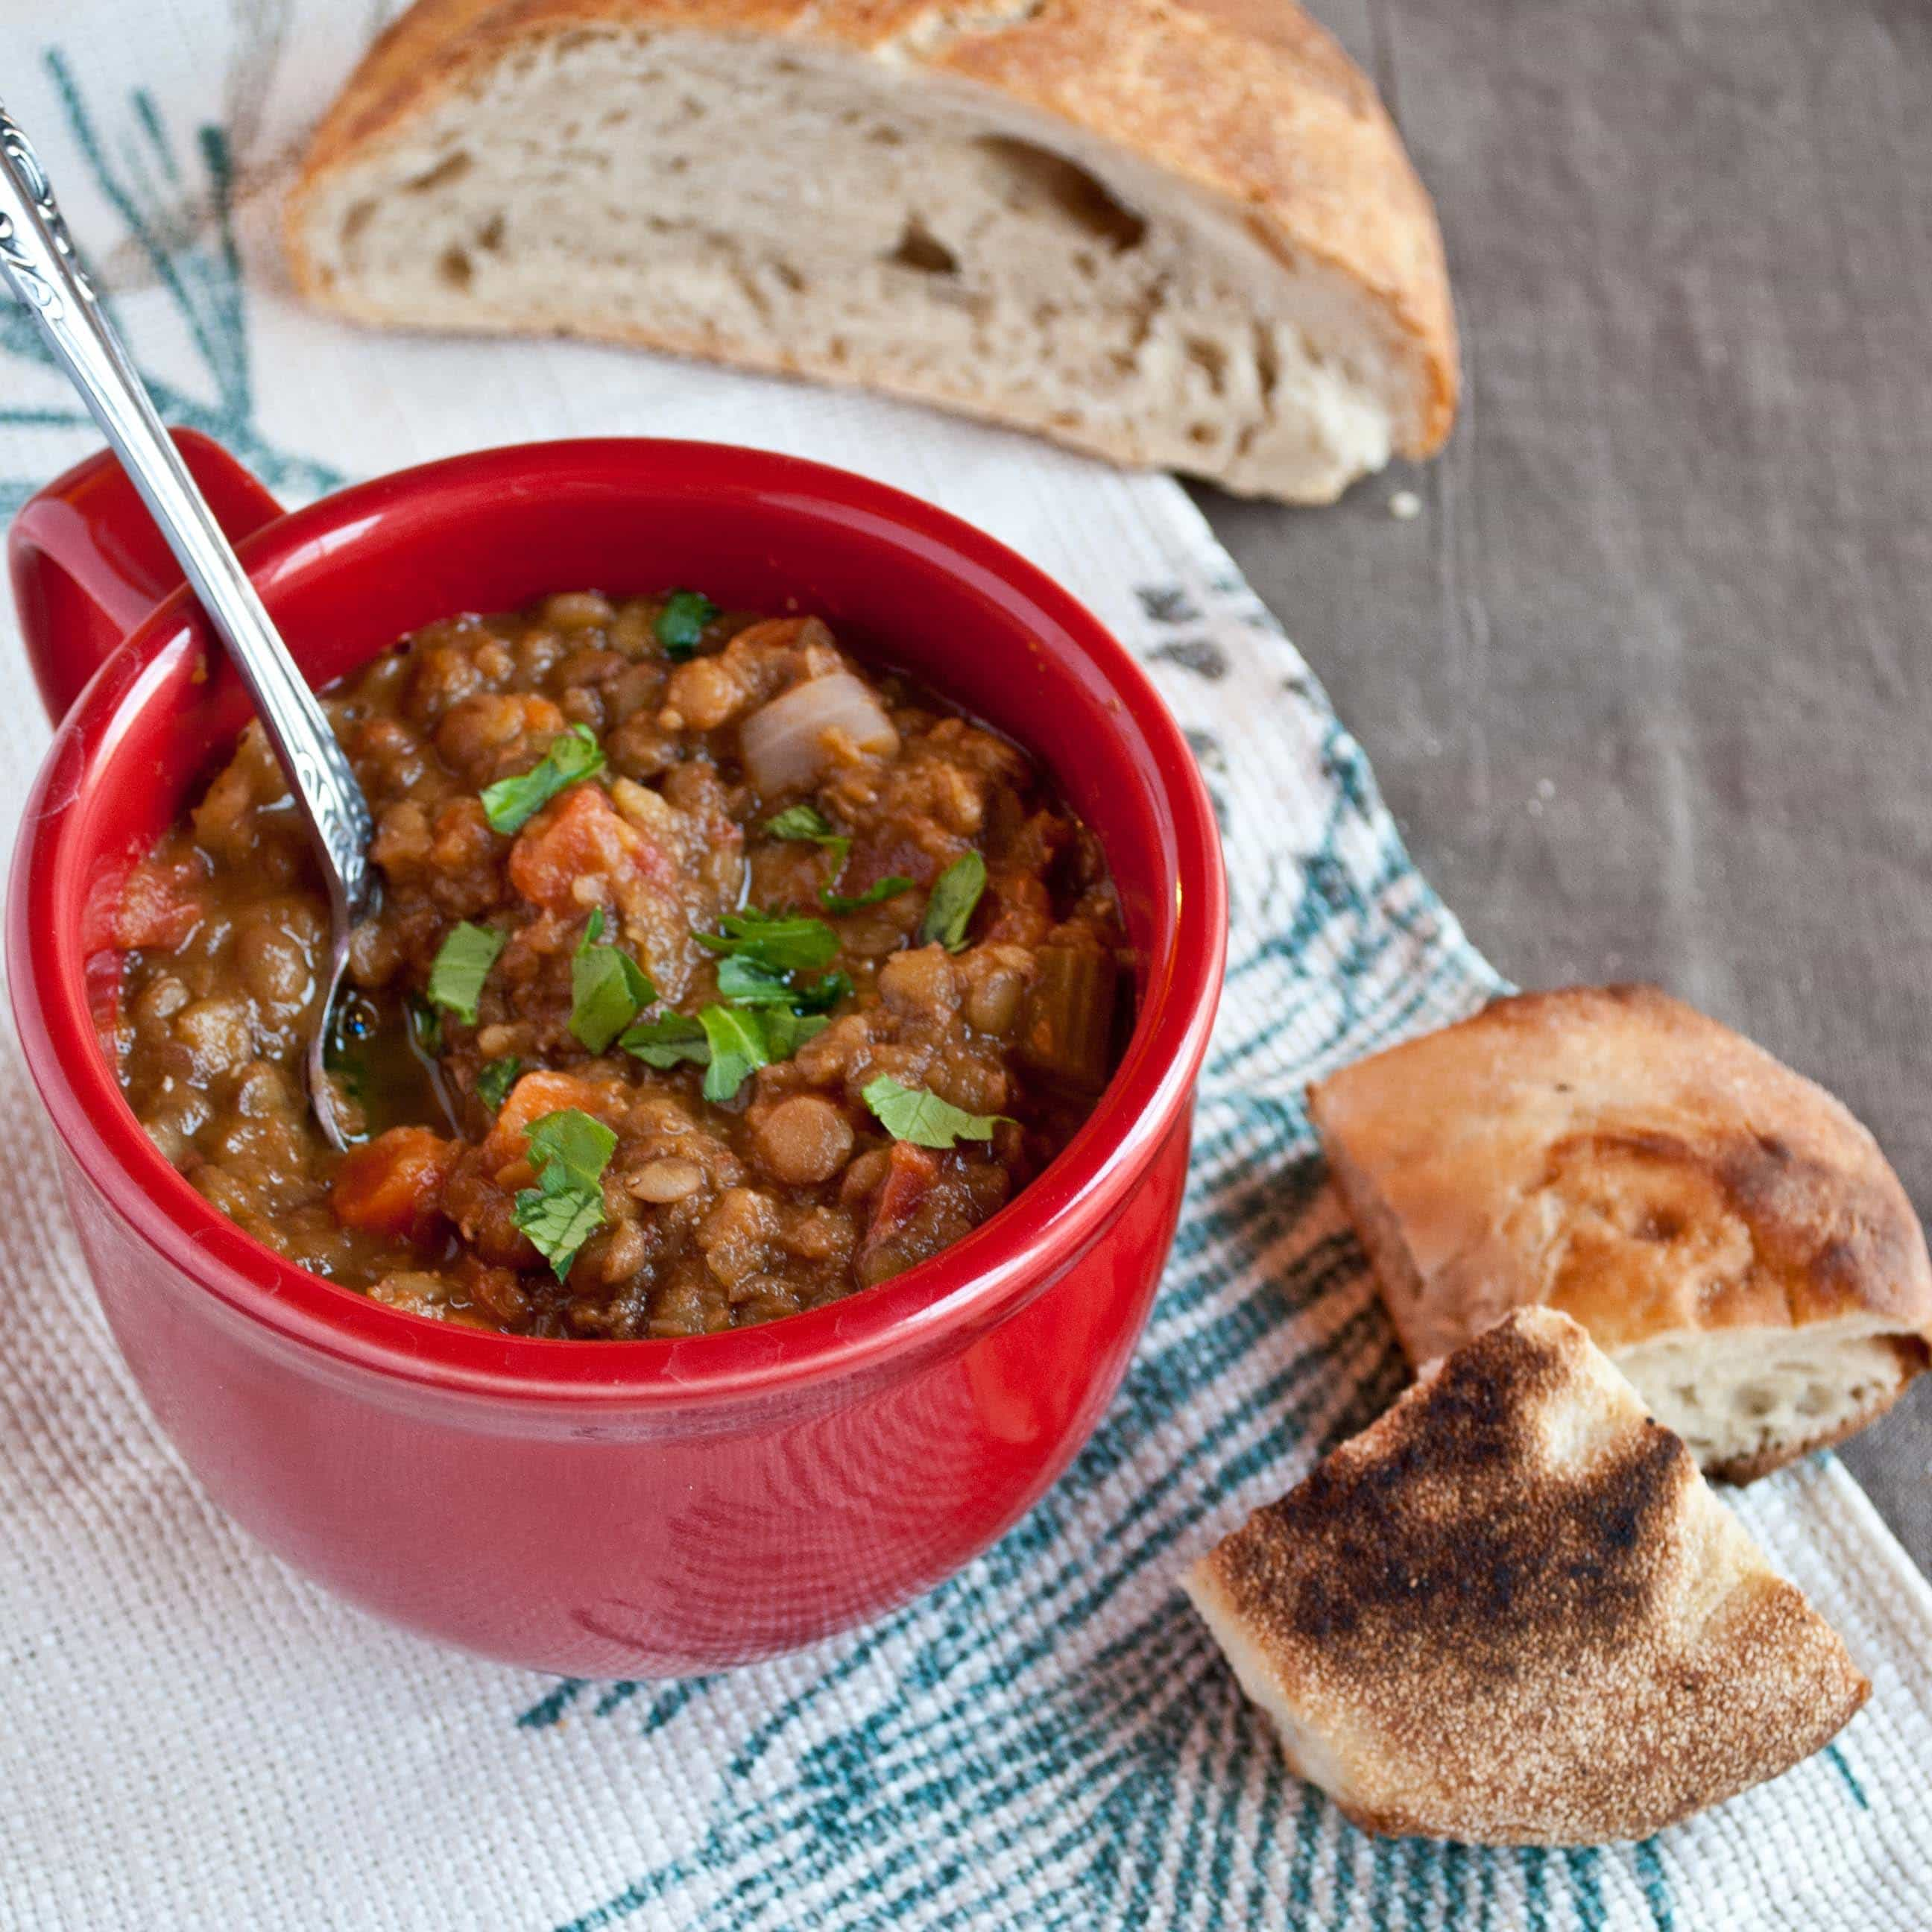 Recipe for Vegan Gluten Free Lentil Soup